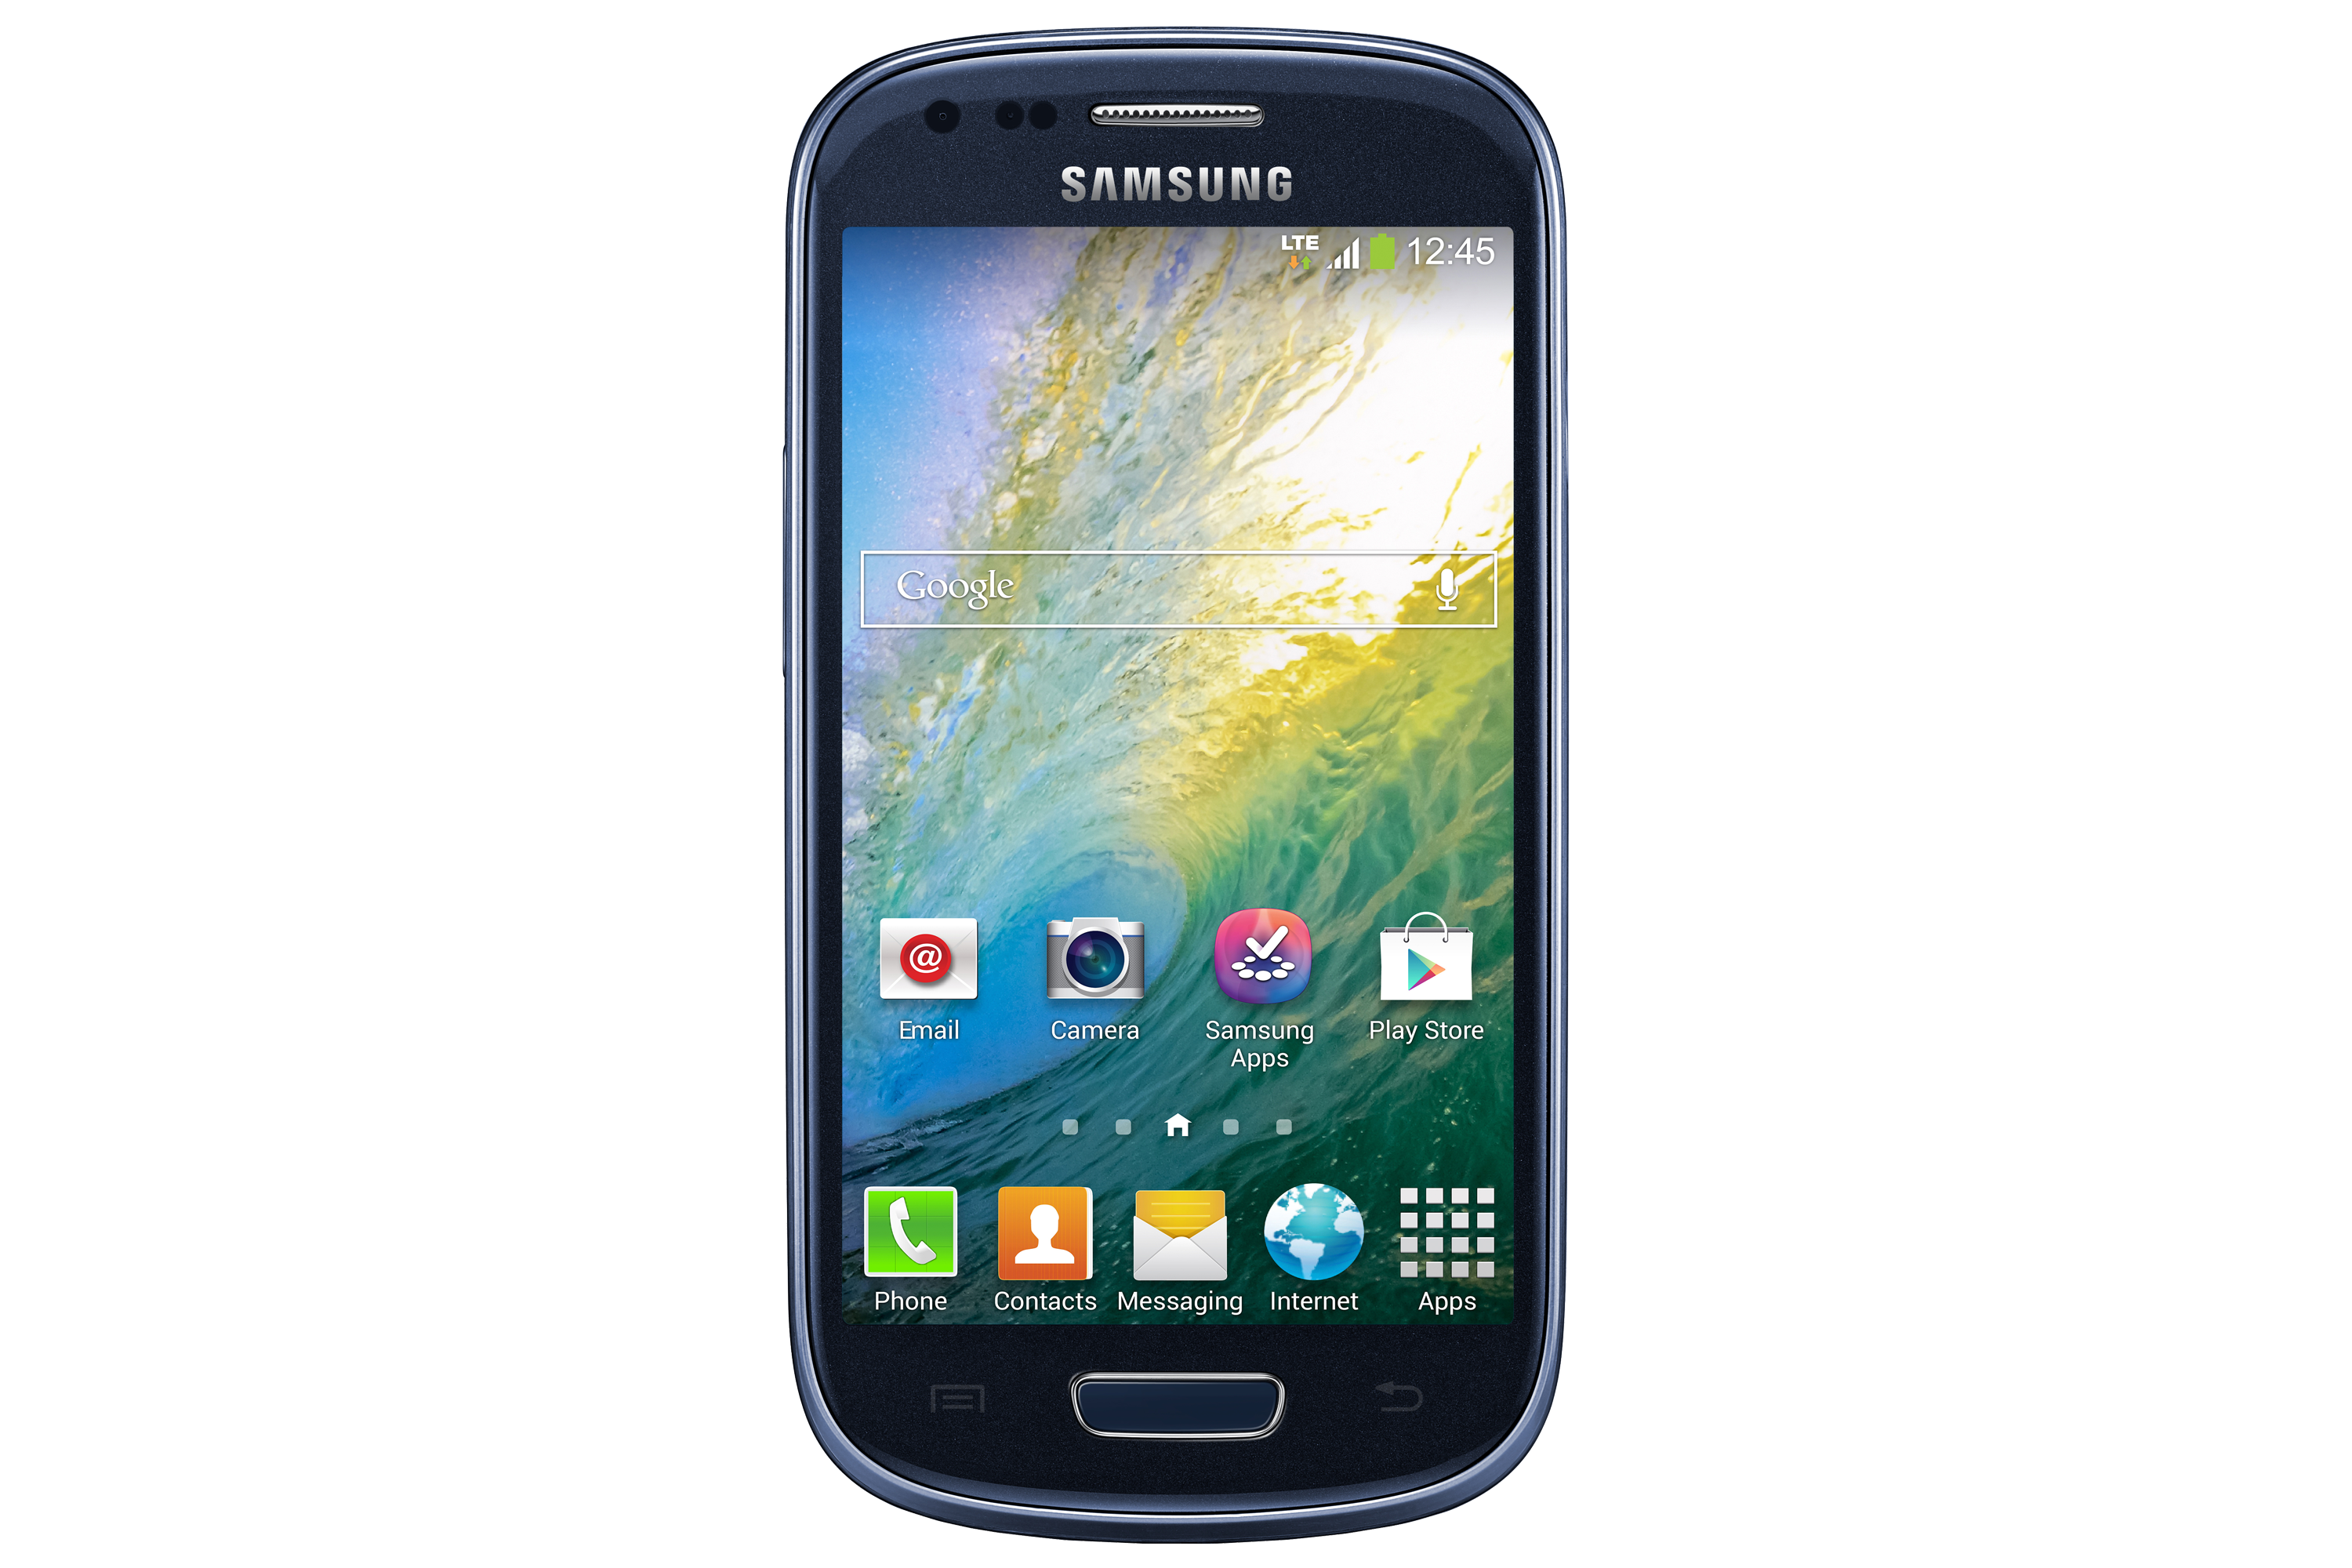 Galaxy S3 Mini Samsung Support Ca 2073321 Png Images Pngio